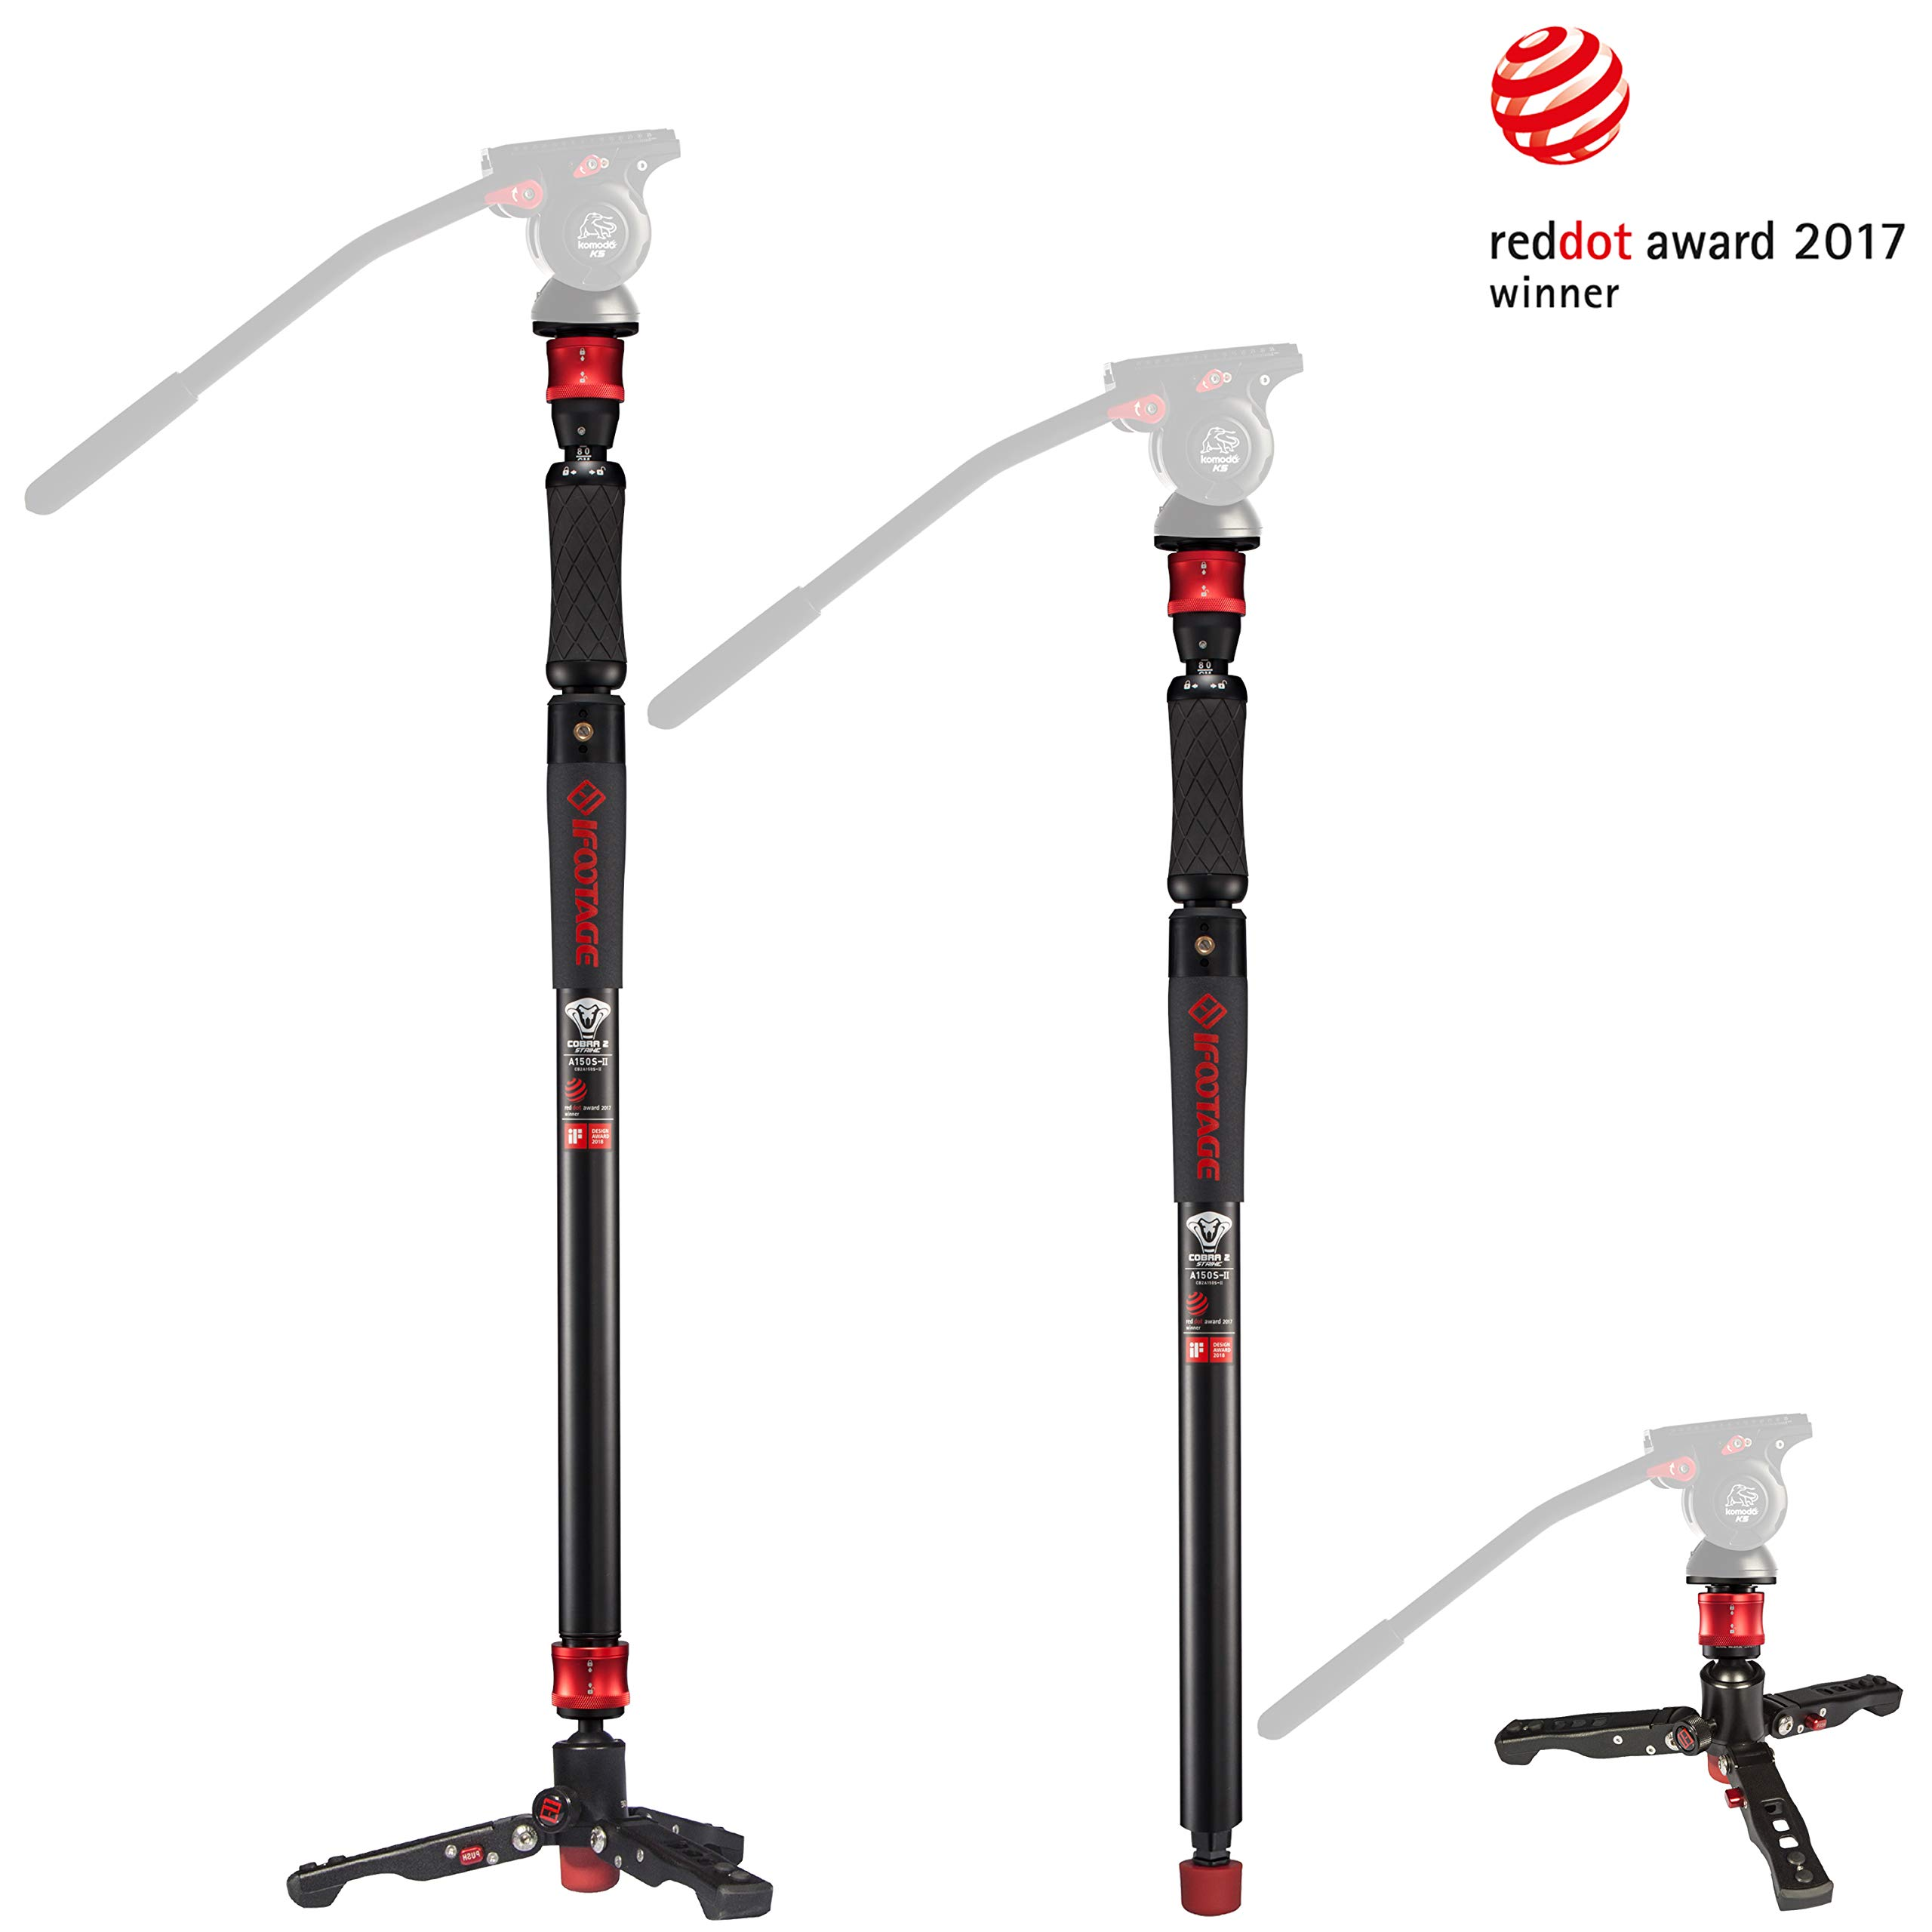 IFOOTAGE Camera Monopod Professional 59'' Aluminum Telescoping Video Monopods with Tripod Stand Compatible for DSLR Cameras and Camcorders by IFOOTAGE